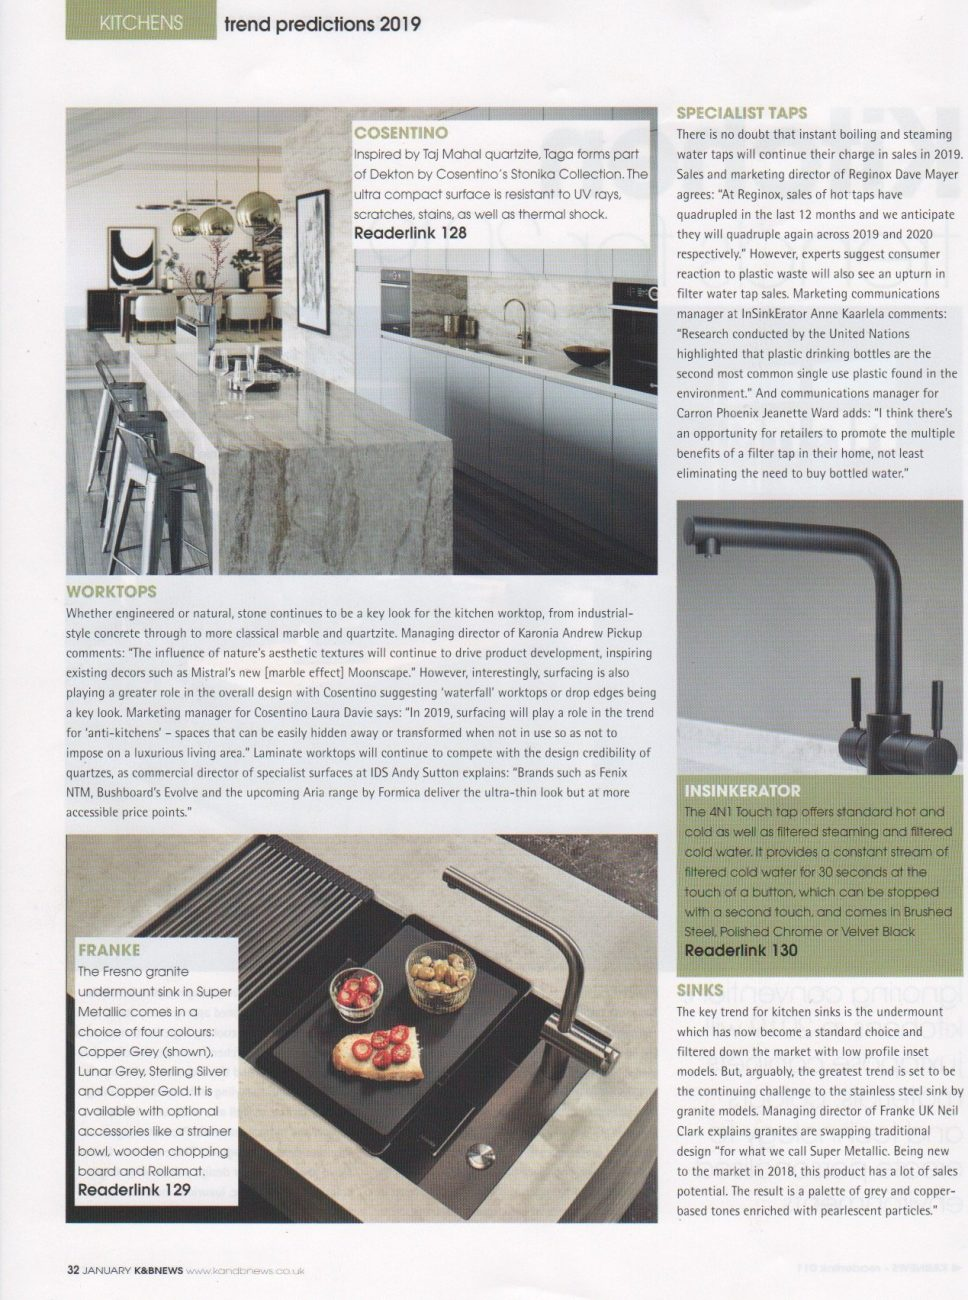 Part 2 of a kitchen trends feature in Kitchens and Bathrooms News magazine